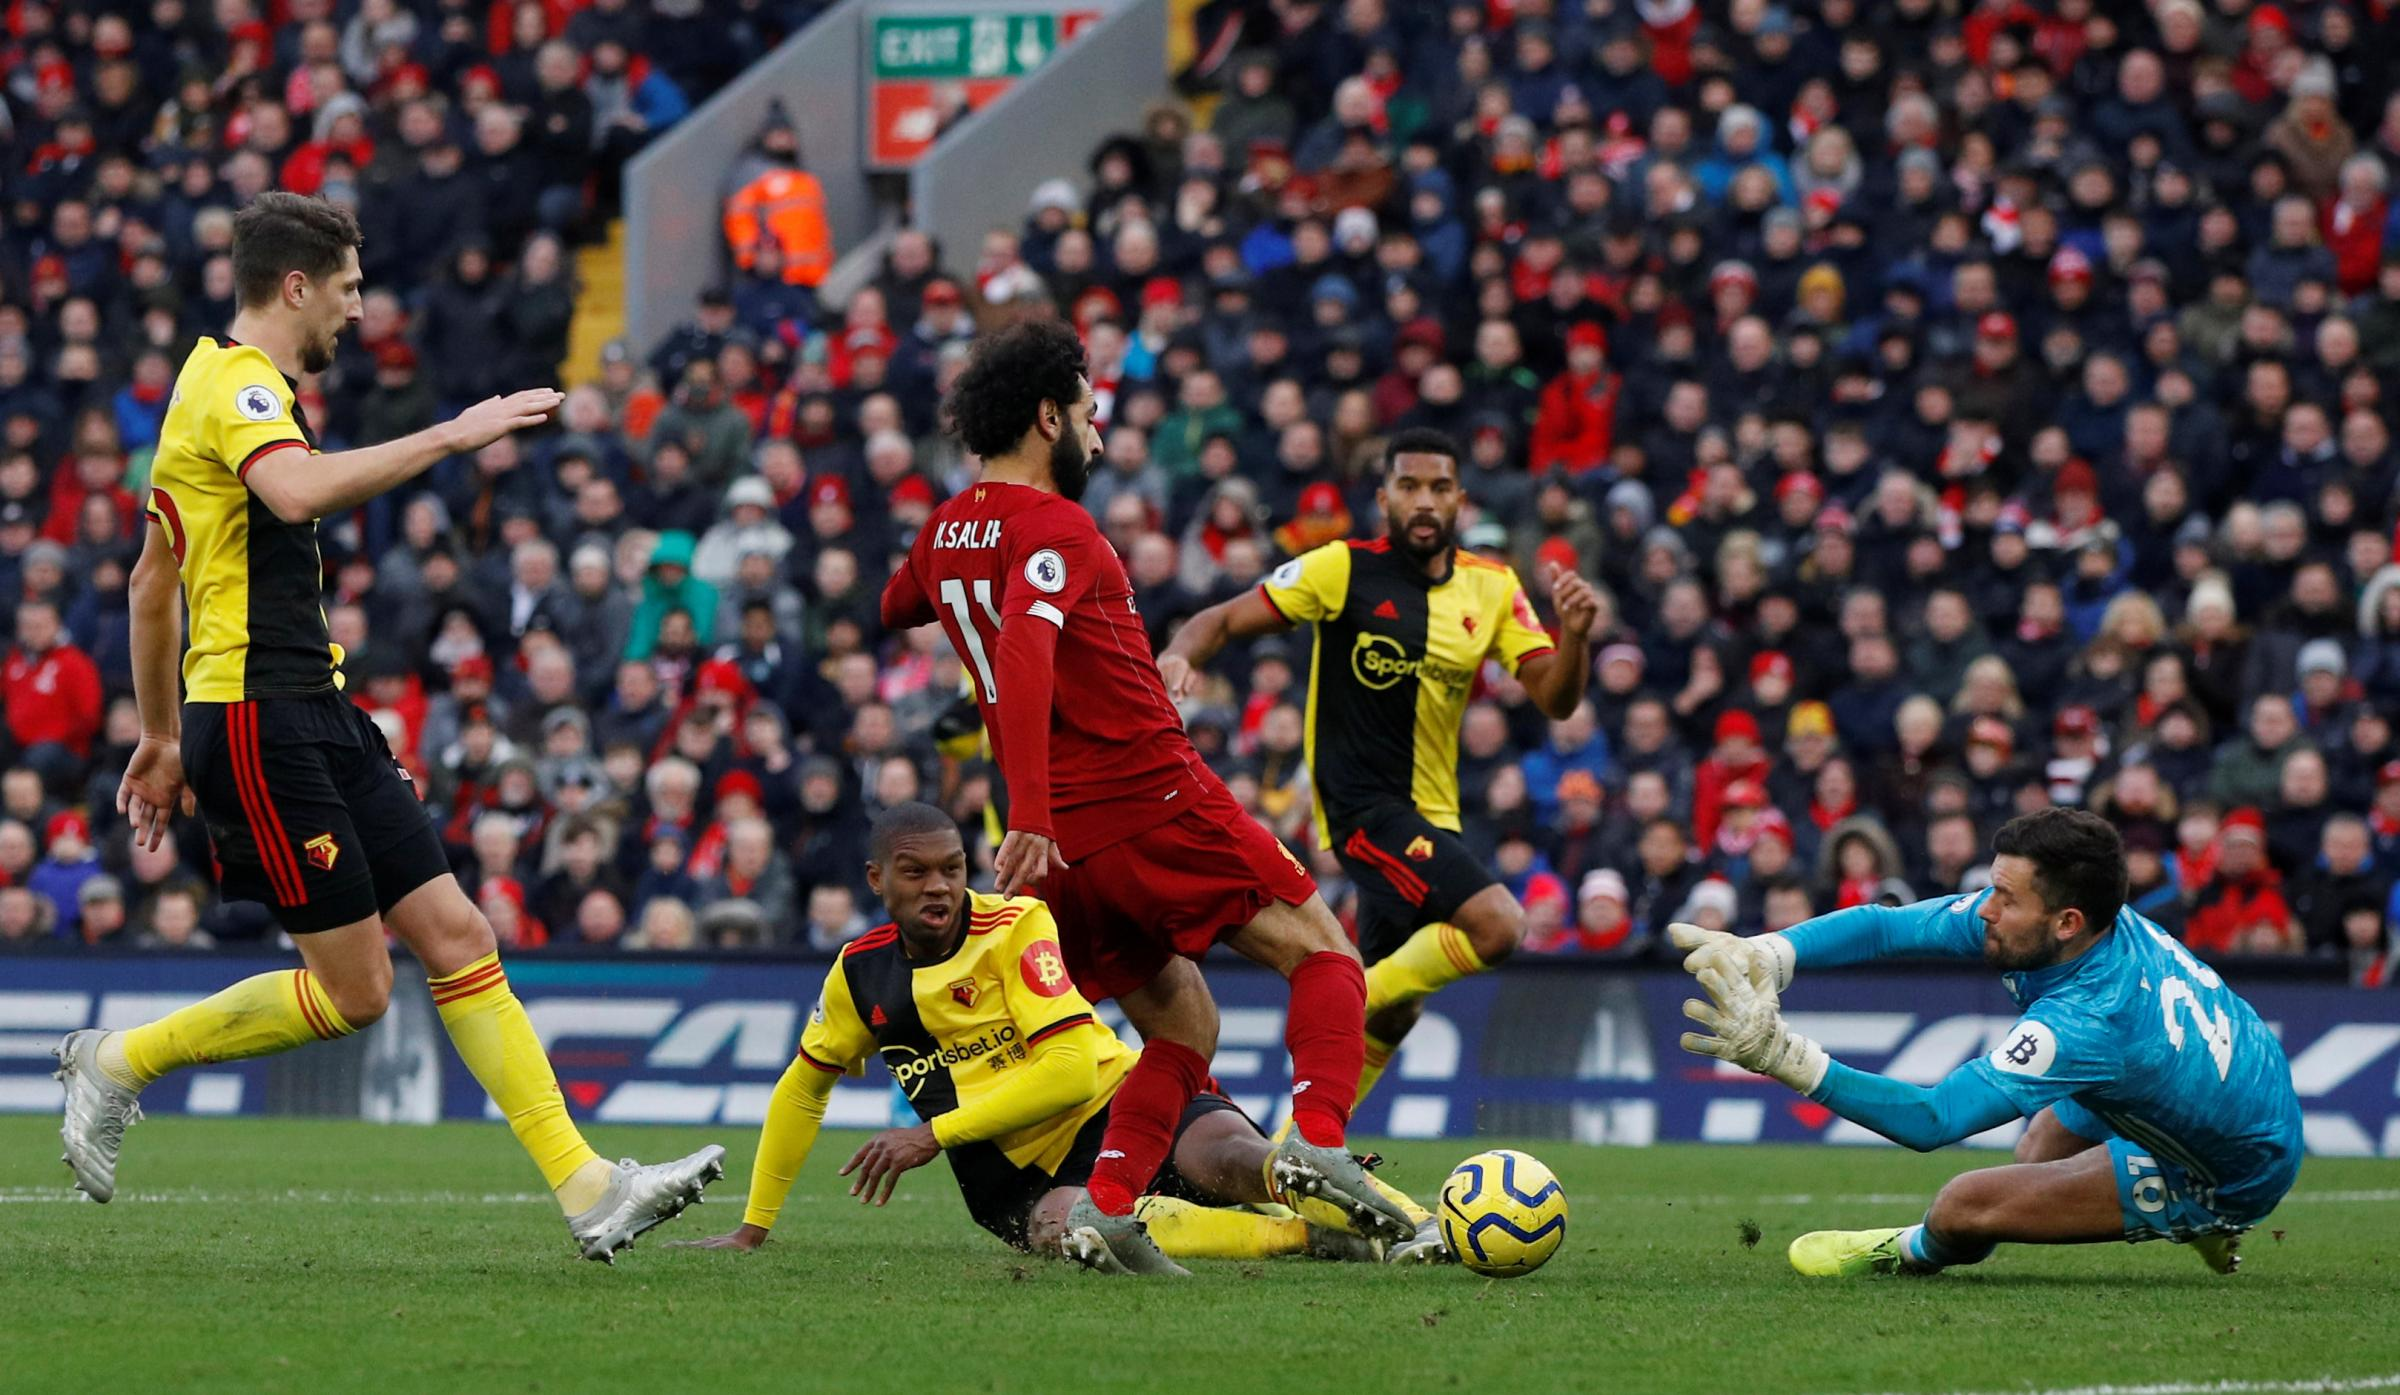 League leaders Liverpool beat Watford at Anfield